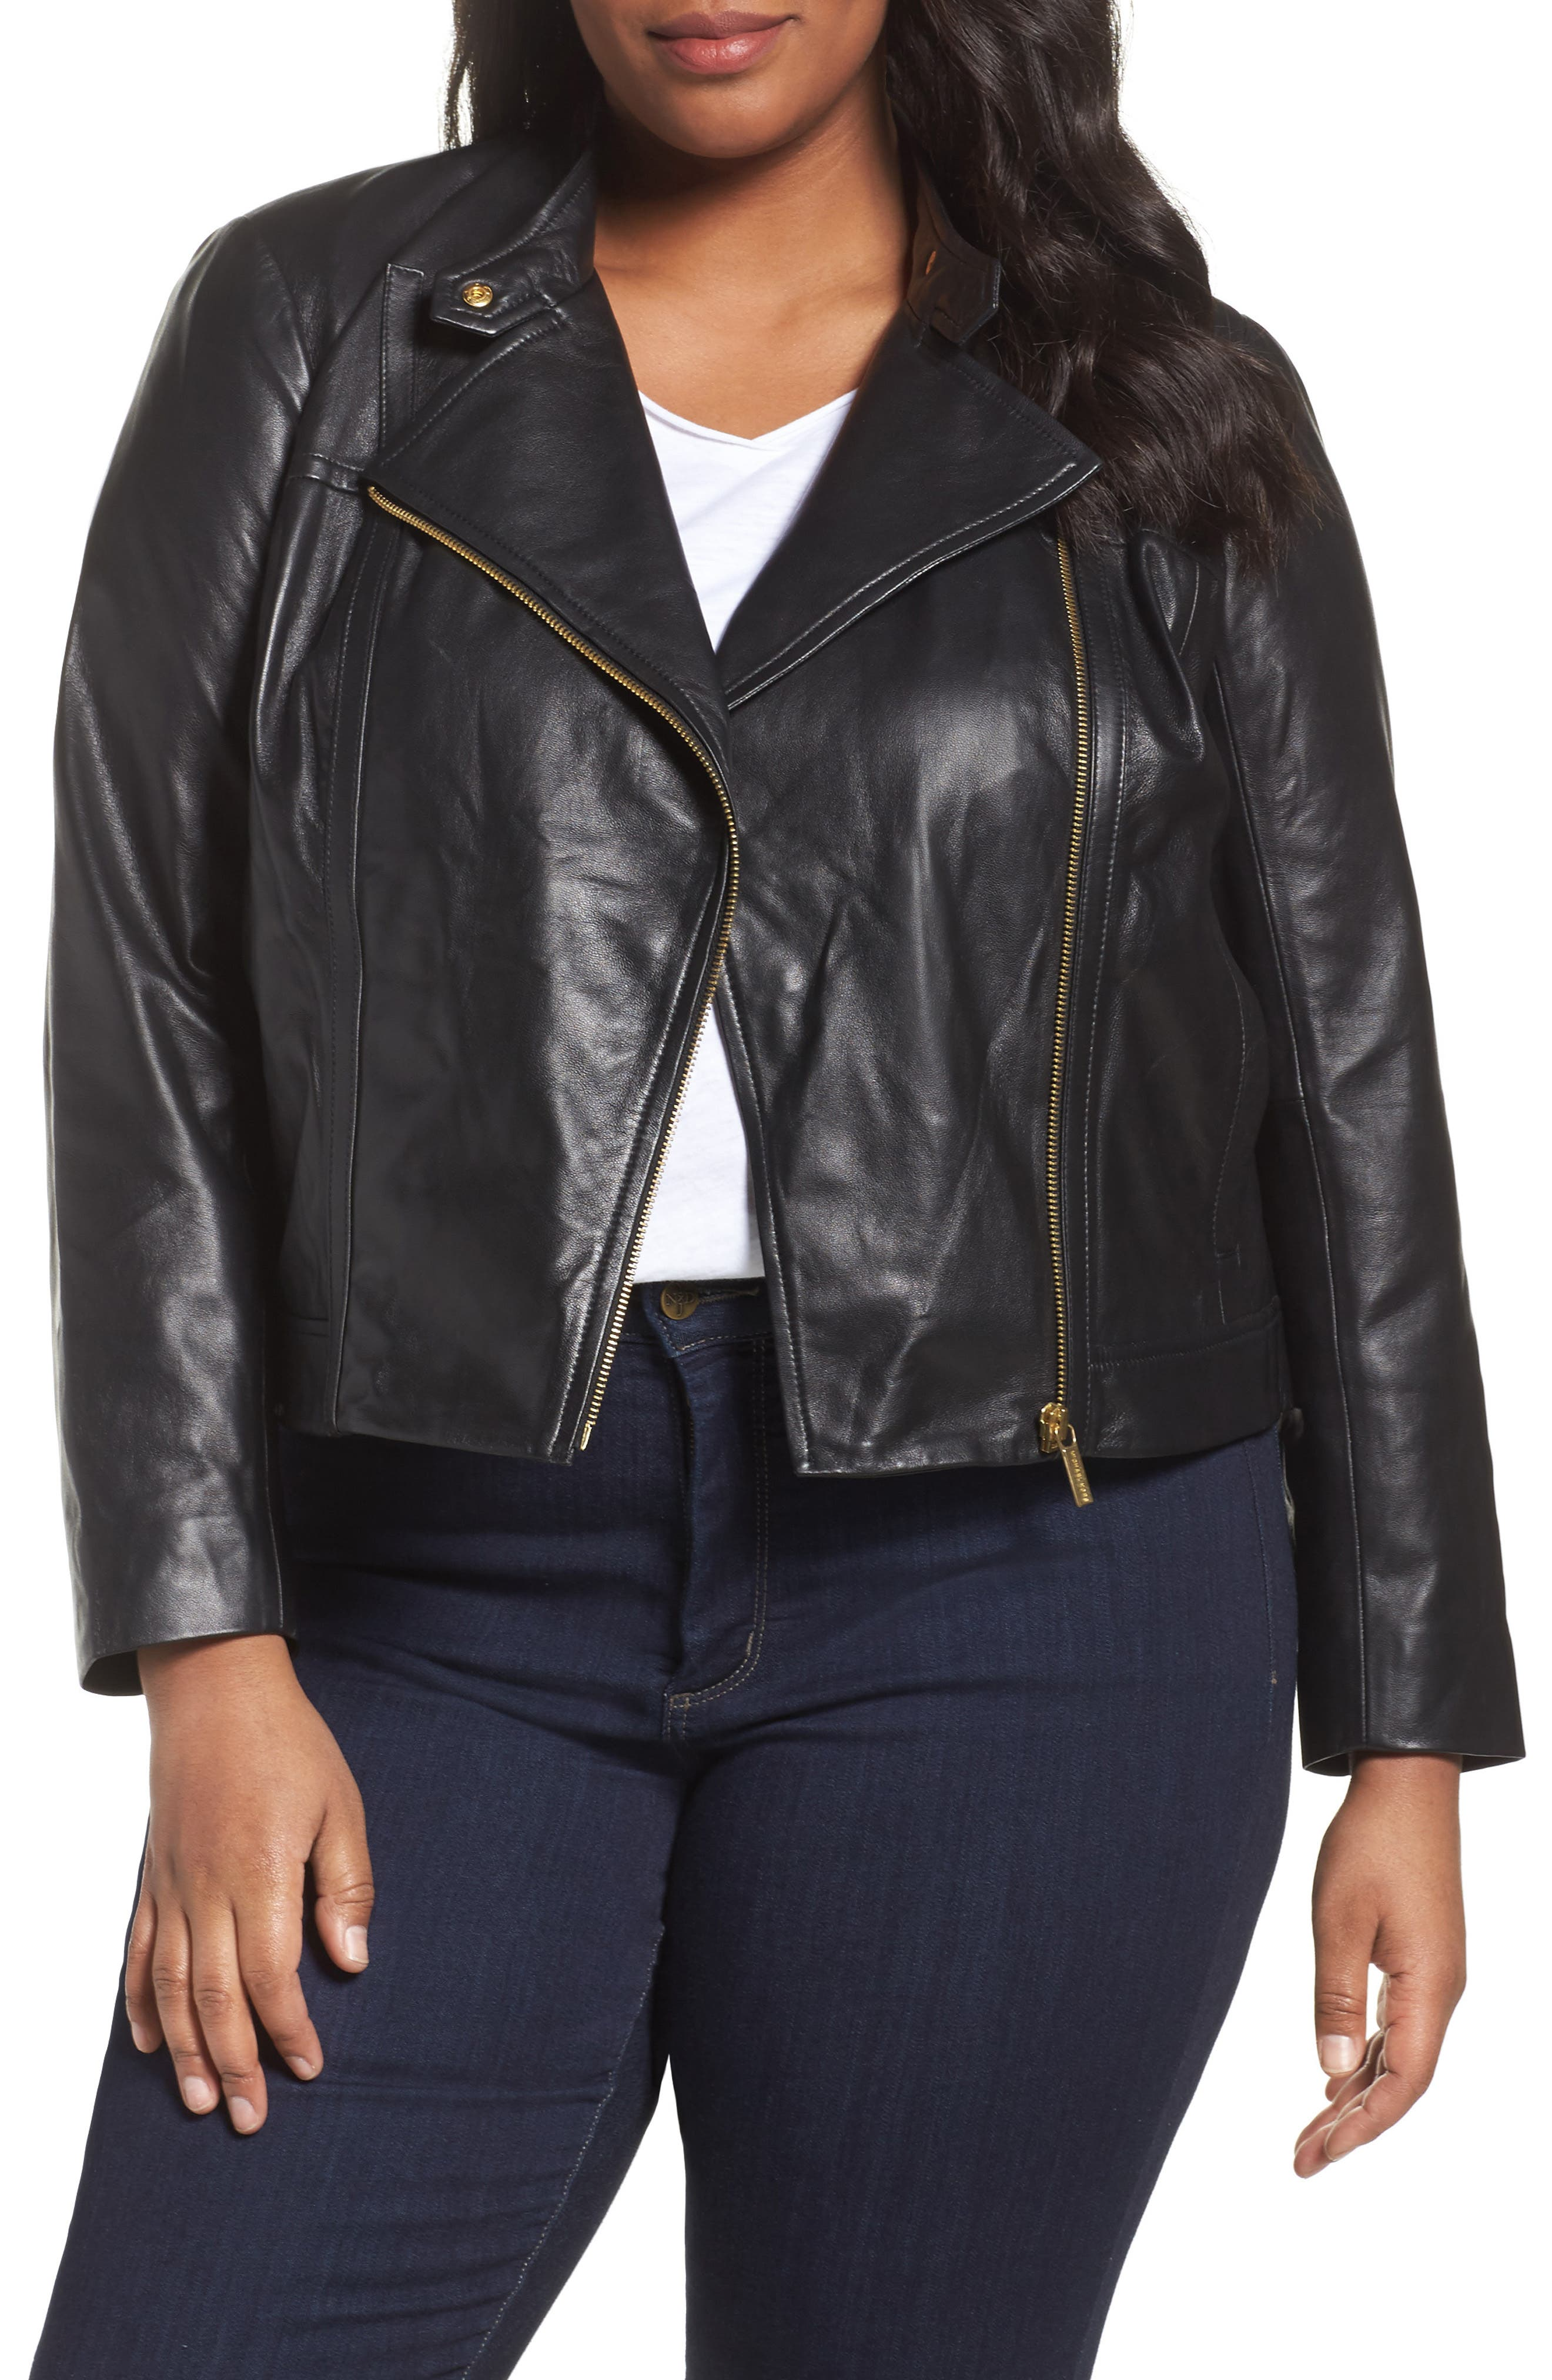 Alternate Image 1 Selected - MICHAEL Michael Kors Crop Leather Jacket (Plus Size)